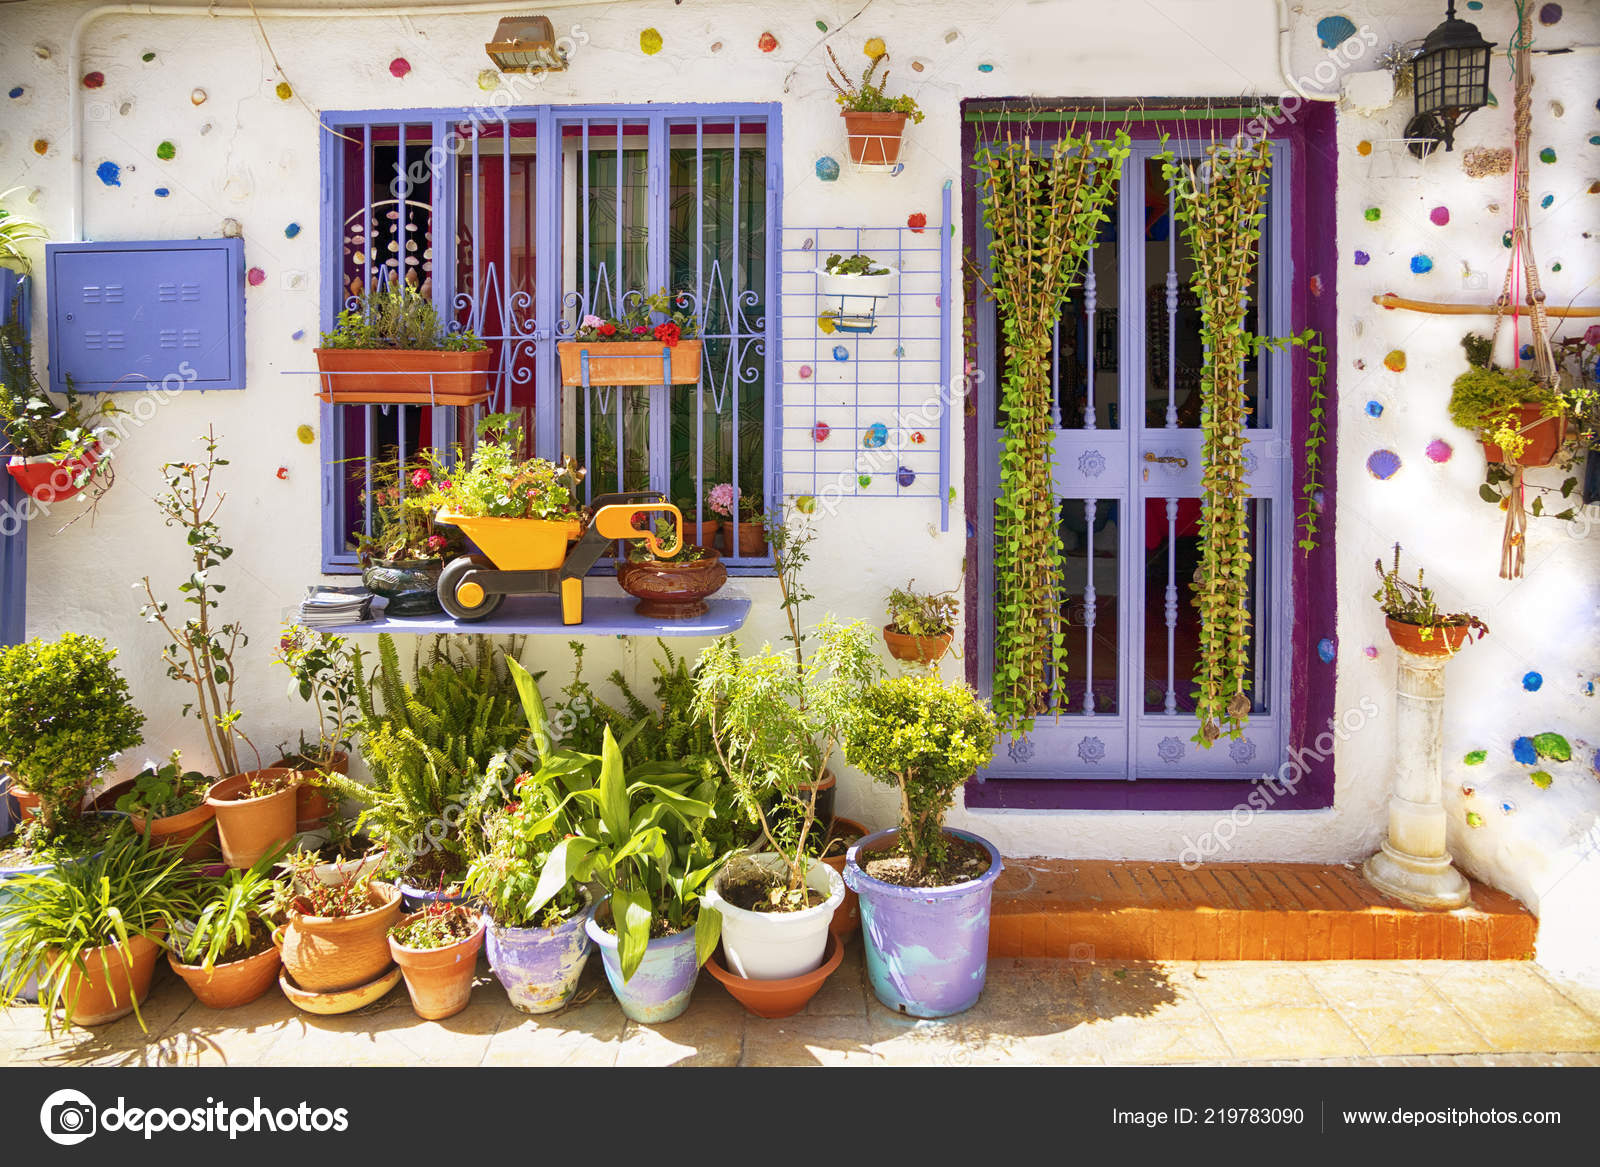 Spanish Village Spring Season Stock Photo C Araraadt 219783090